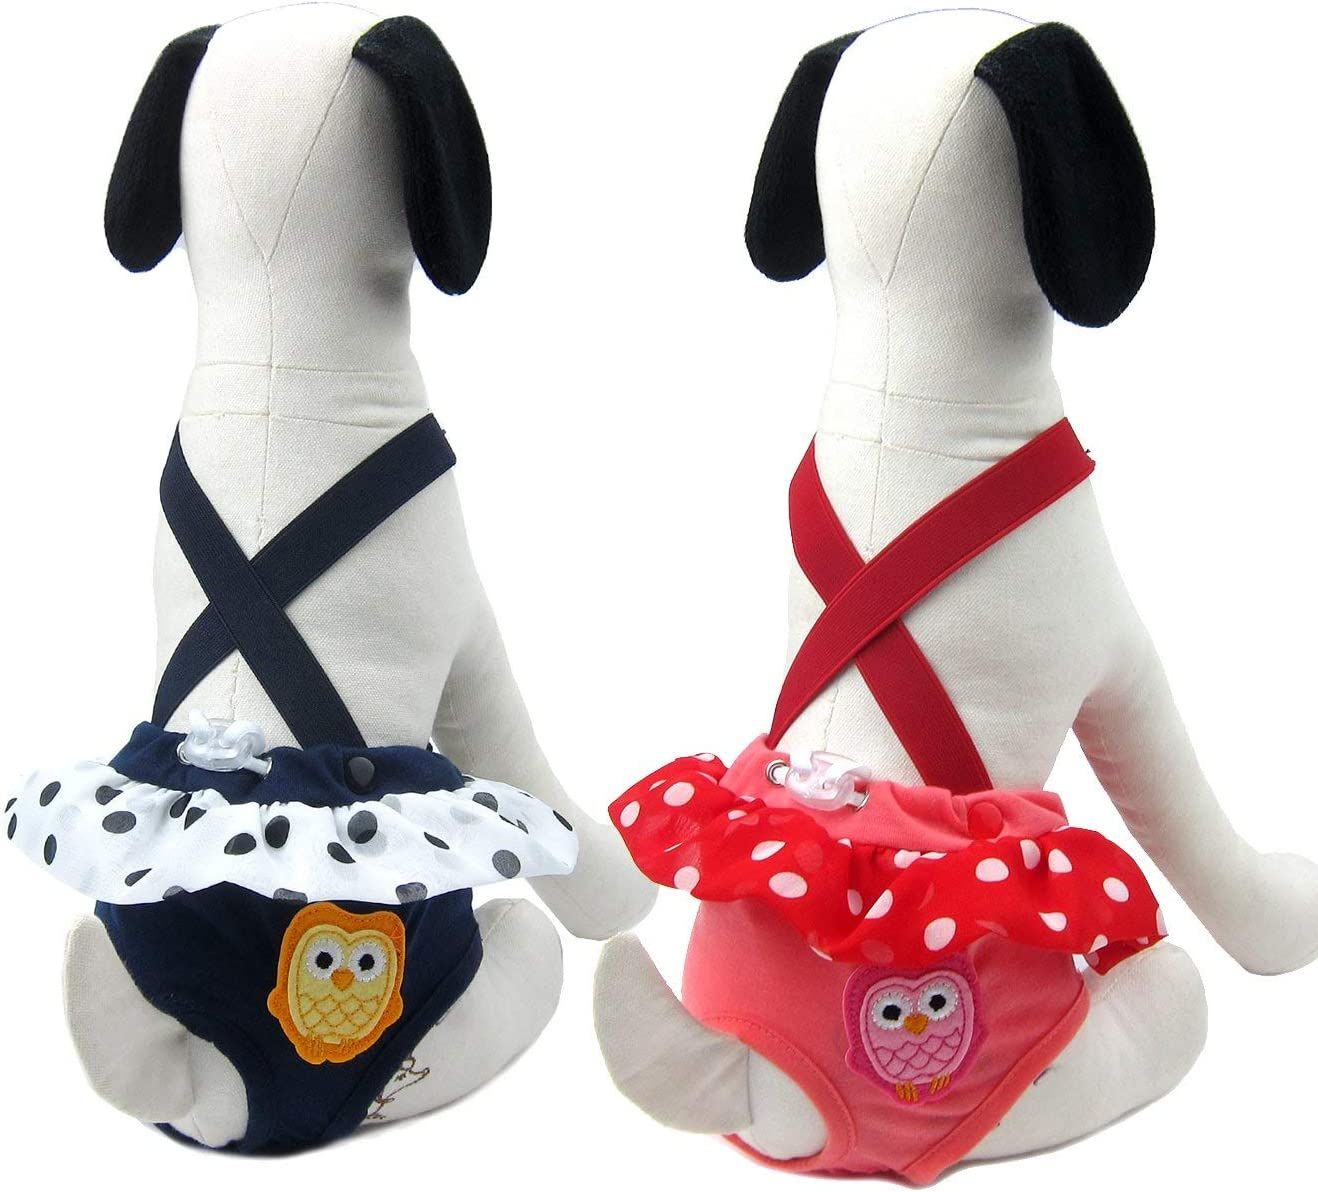 Alfie Pet Size: Small Ariel Diaper Dog Sanitary Pantie with Suspender 2-Piece Set for Girl Dogs Red Color: Navy